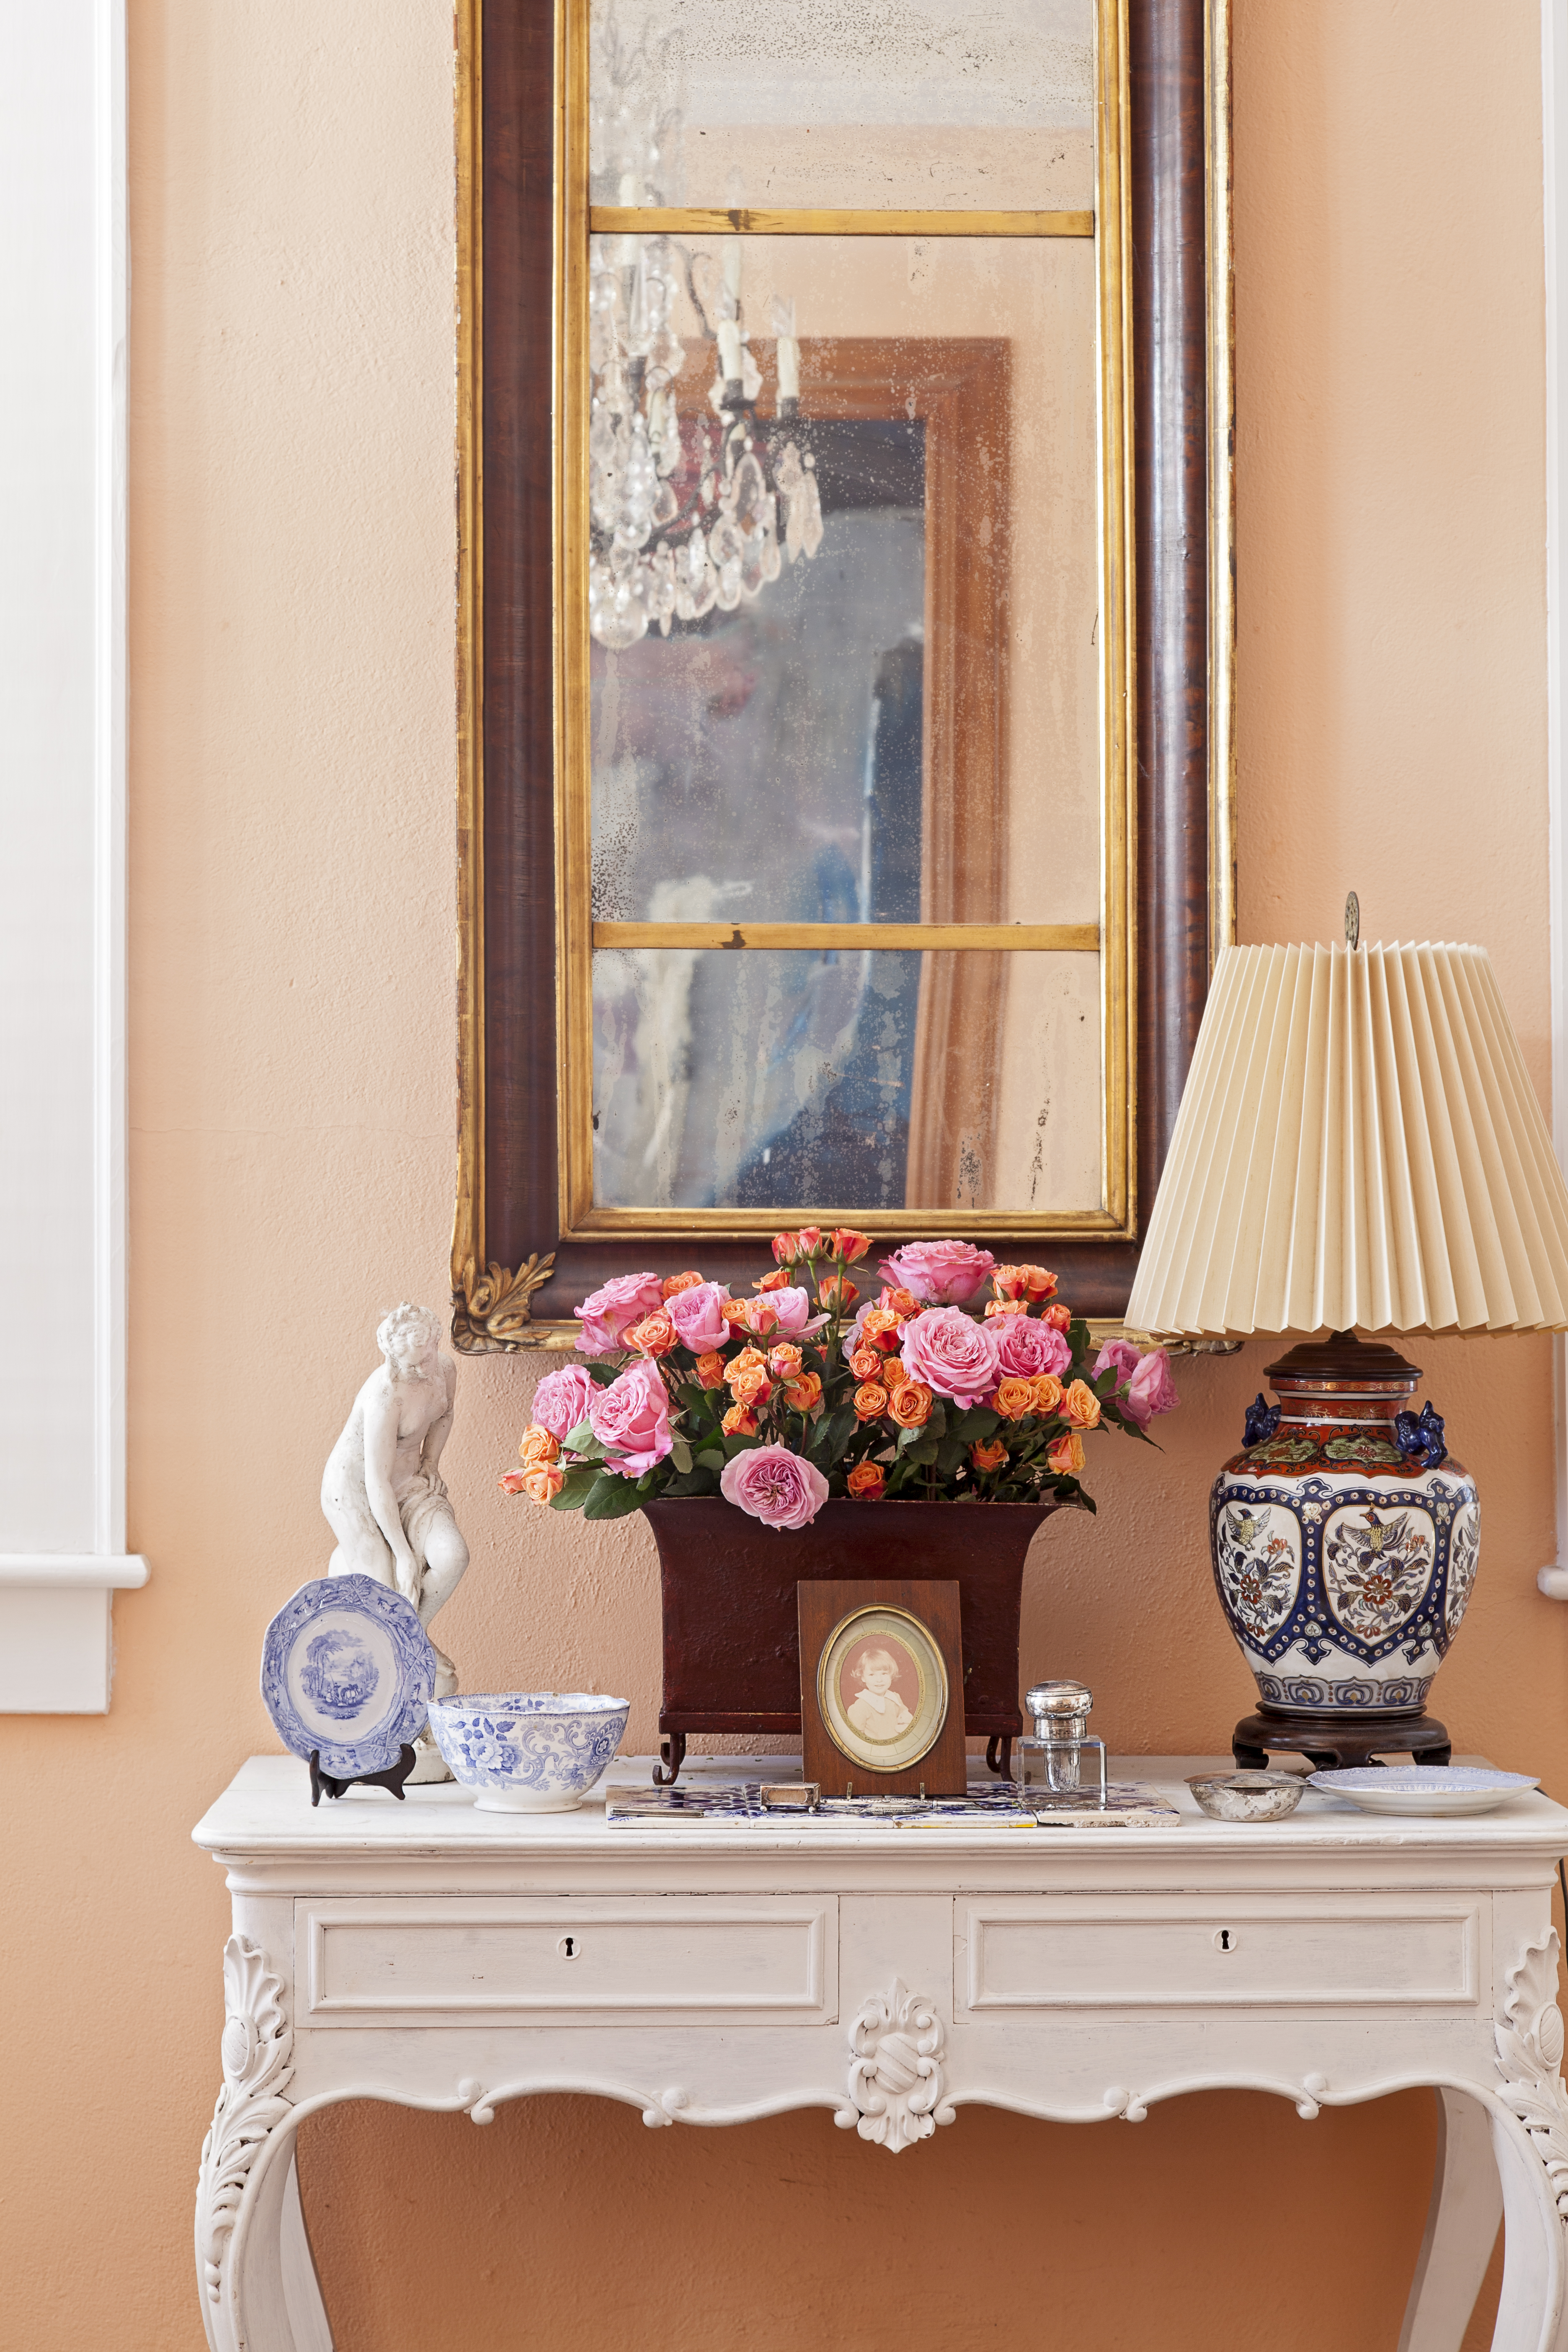 First Blush: This mirror is one of the first things Bigner purchased for the house; she liked how its height complemented the ceilings.